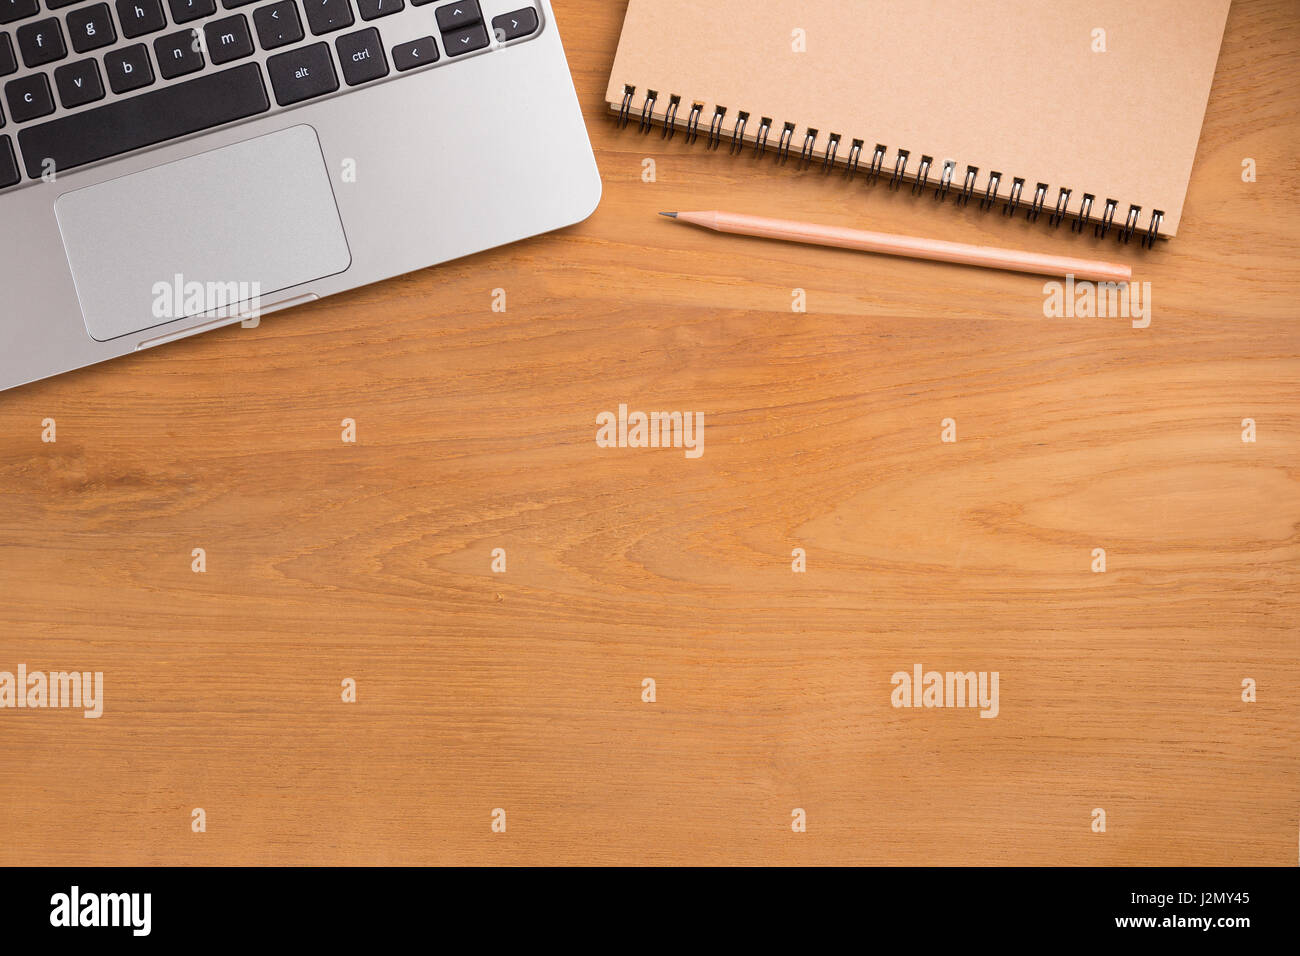 Portable computer laptop, pencil, paper notebook on wooden table - Stock Image